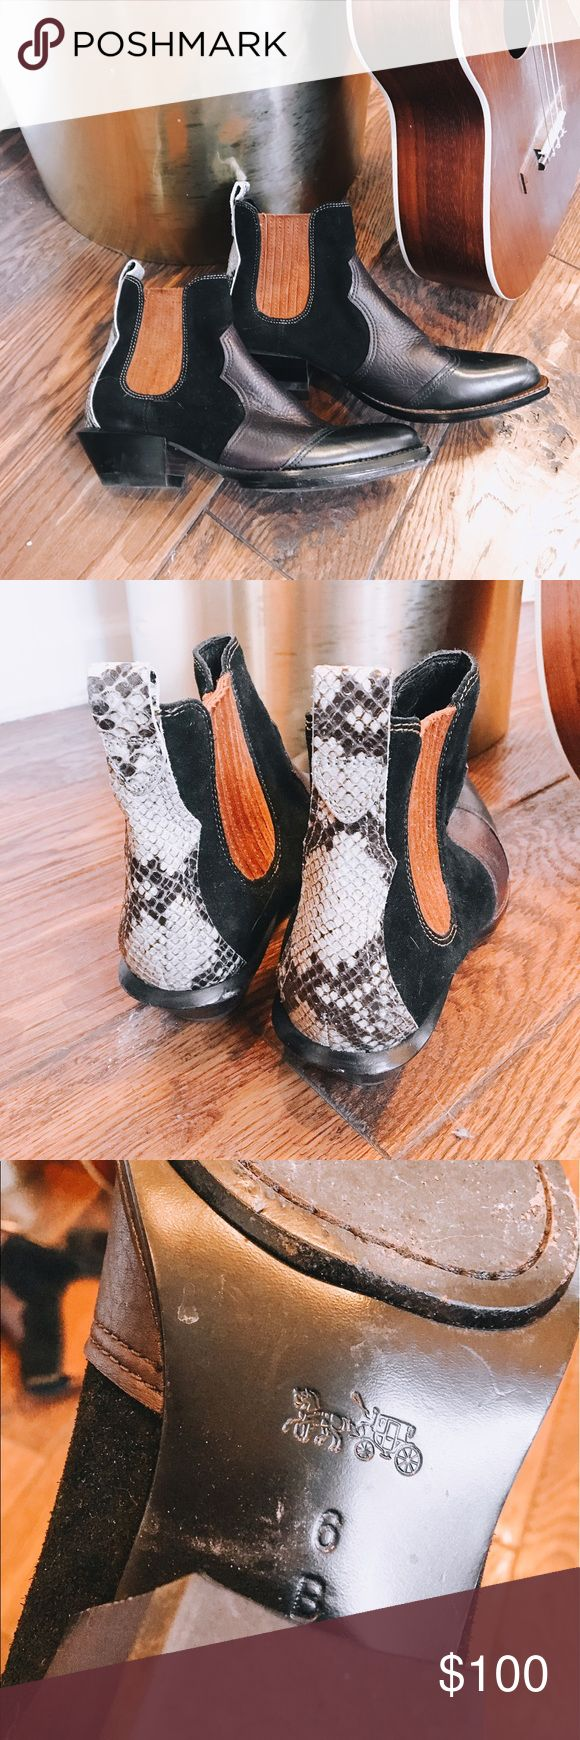 Coach Bandit Chelsea Boot Black, Brown, Purple and Snake print Bandit Chelsea boots from Coach! Size 6! So cute! Coach Shoes Ankle Boots & Booties